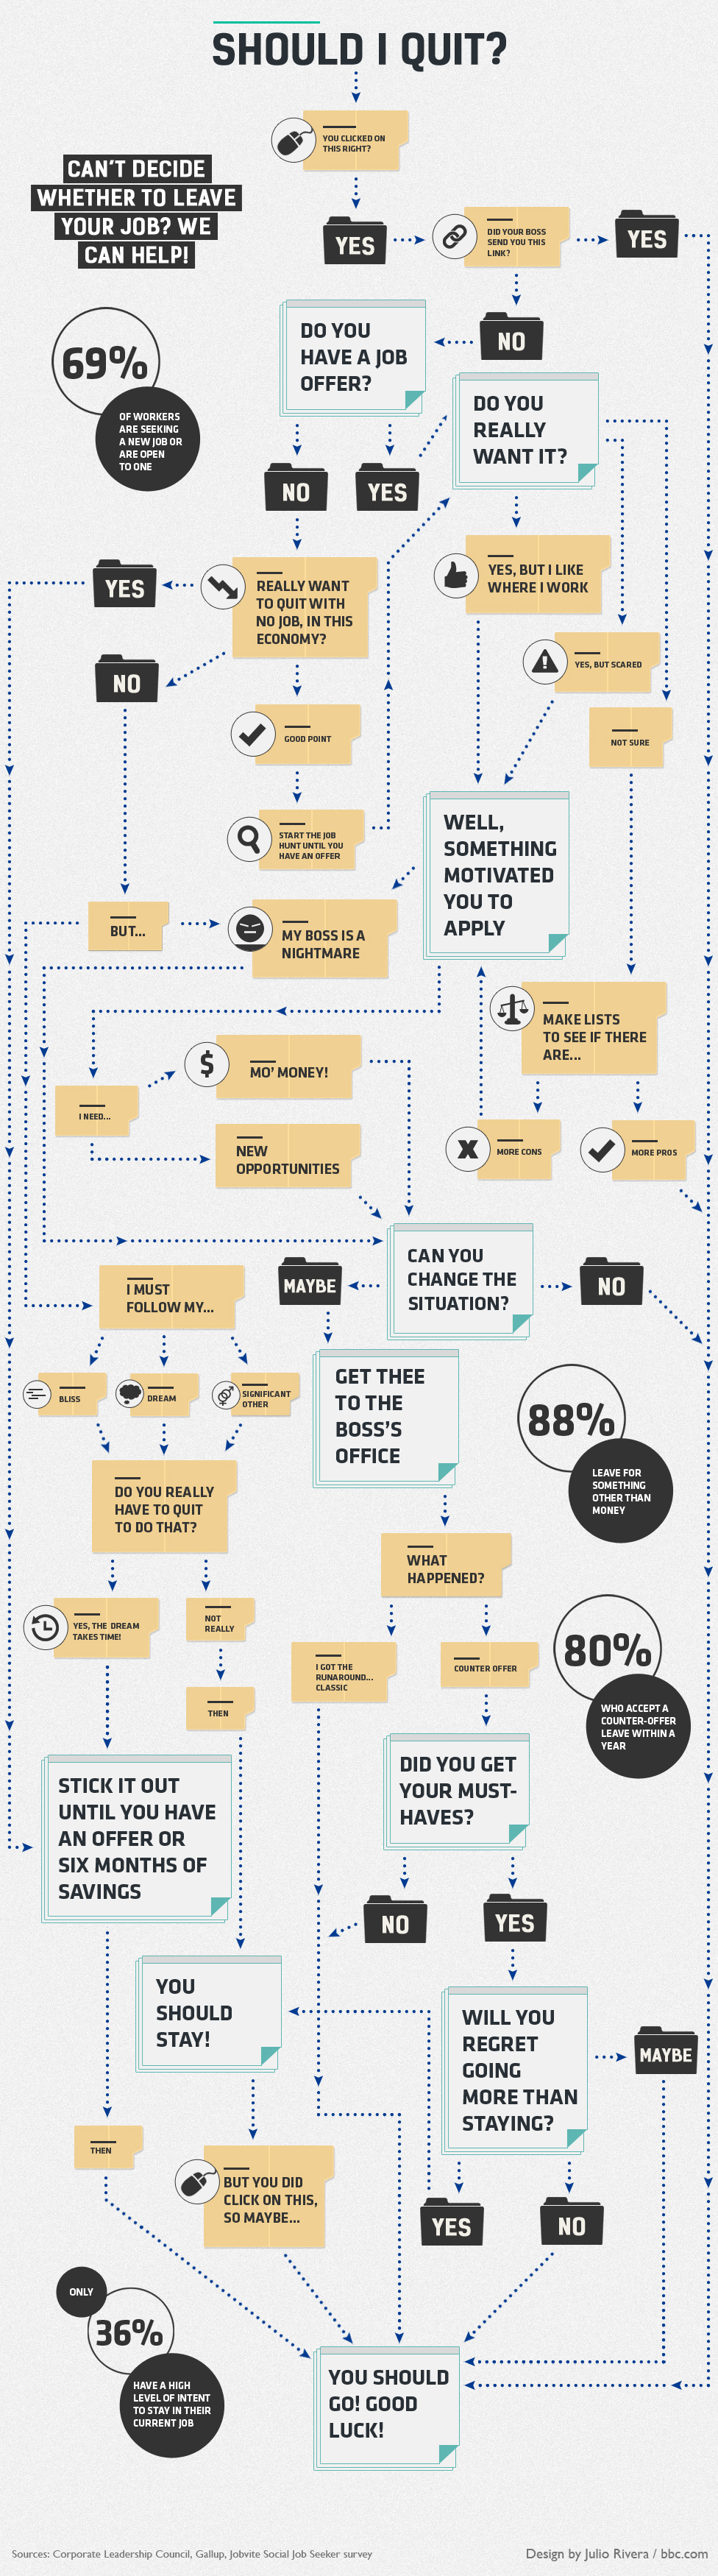 should-i-quit-flowchart